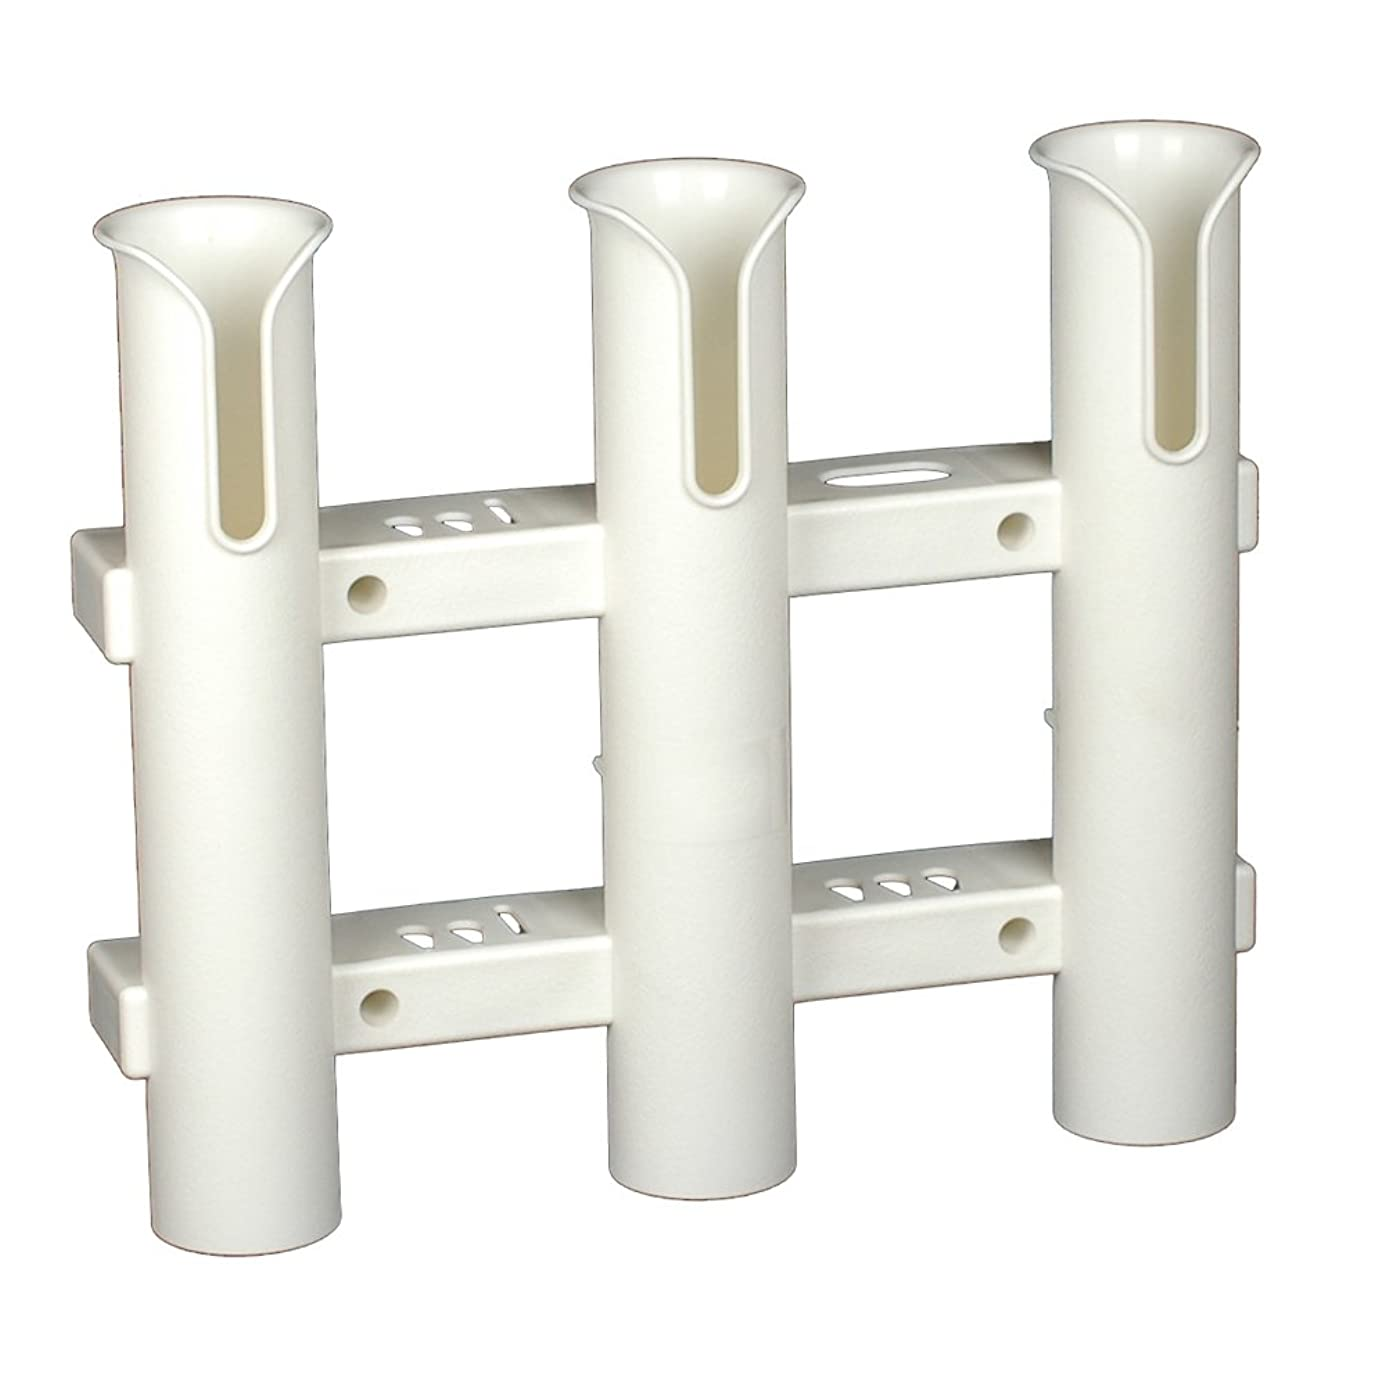 CE Smith Tournament 3 Rack Rod Holder-Replacement Parts and Accessories for Tournament Fishing,  Rod Fishing, Deep Sea Fishing and Trolling